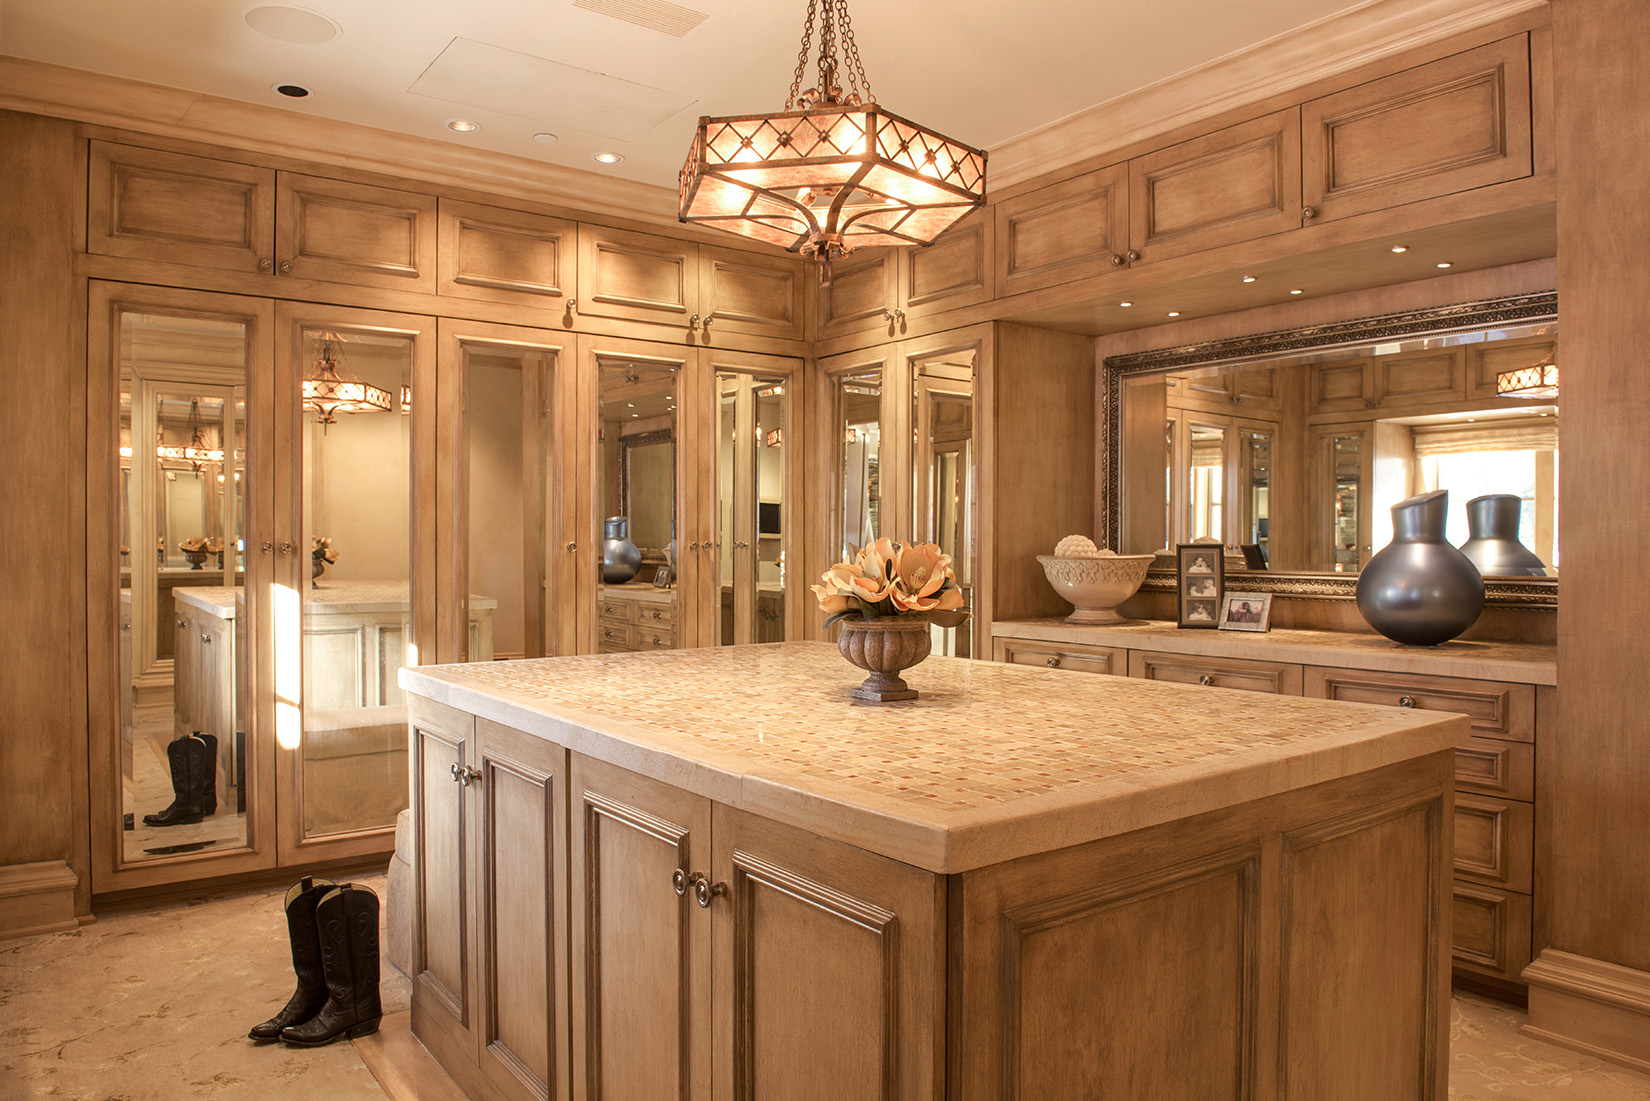 Just off the master bath and bedroom is this amazing closet with wrap around storage and full length mirrors.